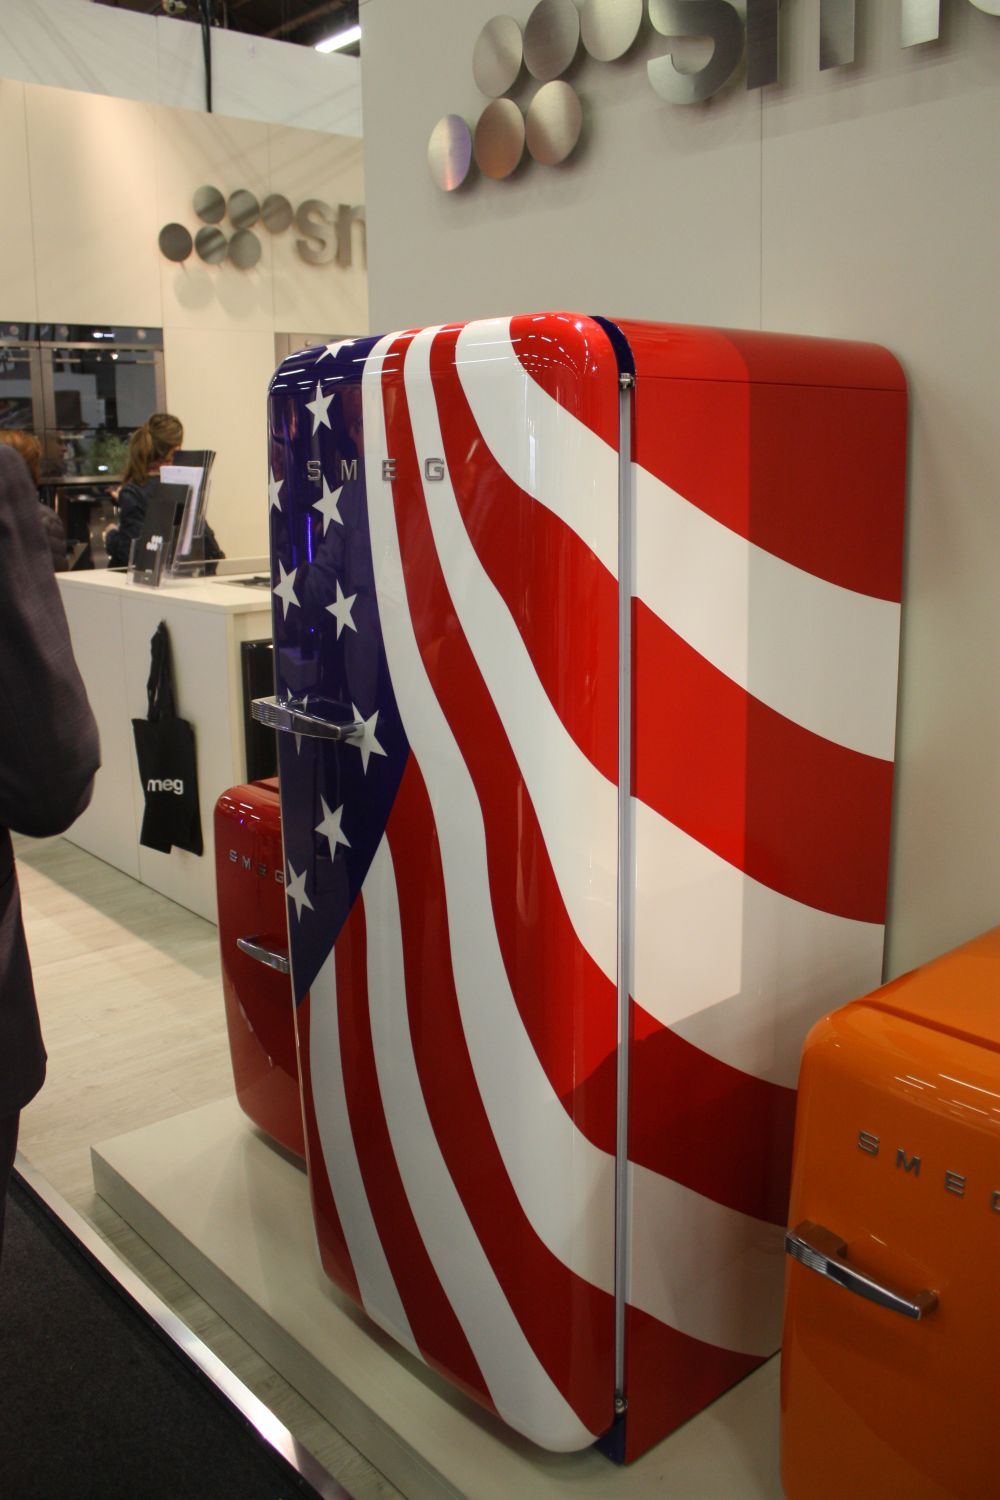 Colored refrigerators are not always monochromatic. This one, for instance, features a patriotic design